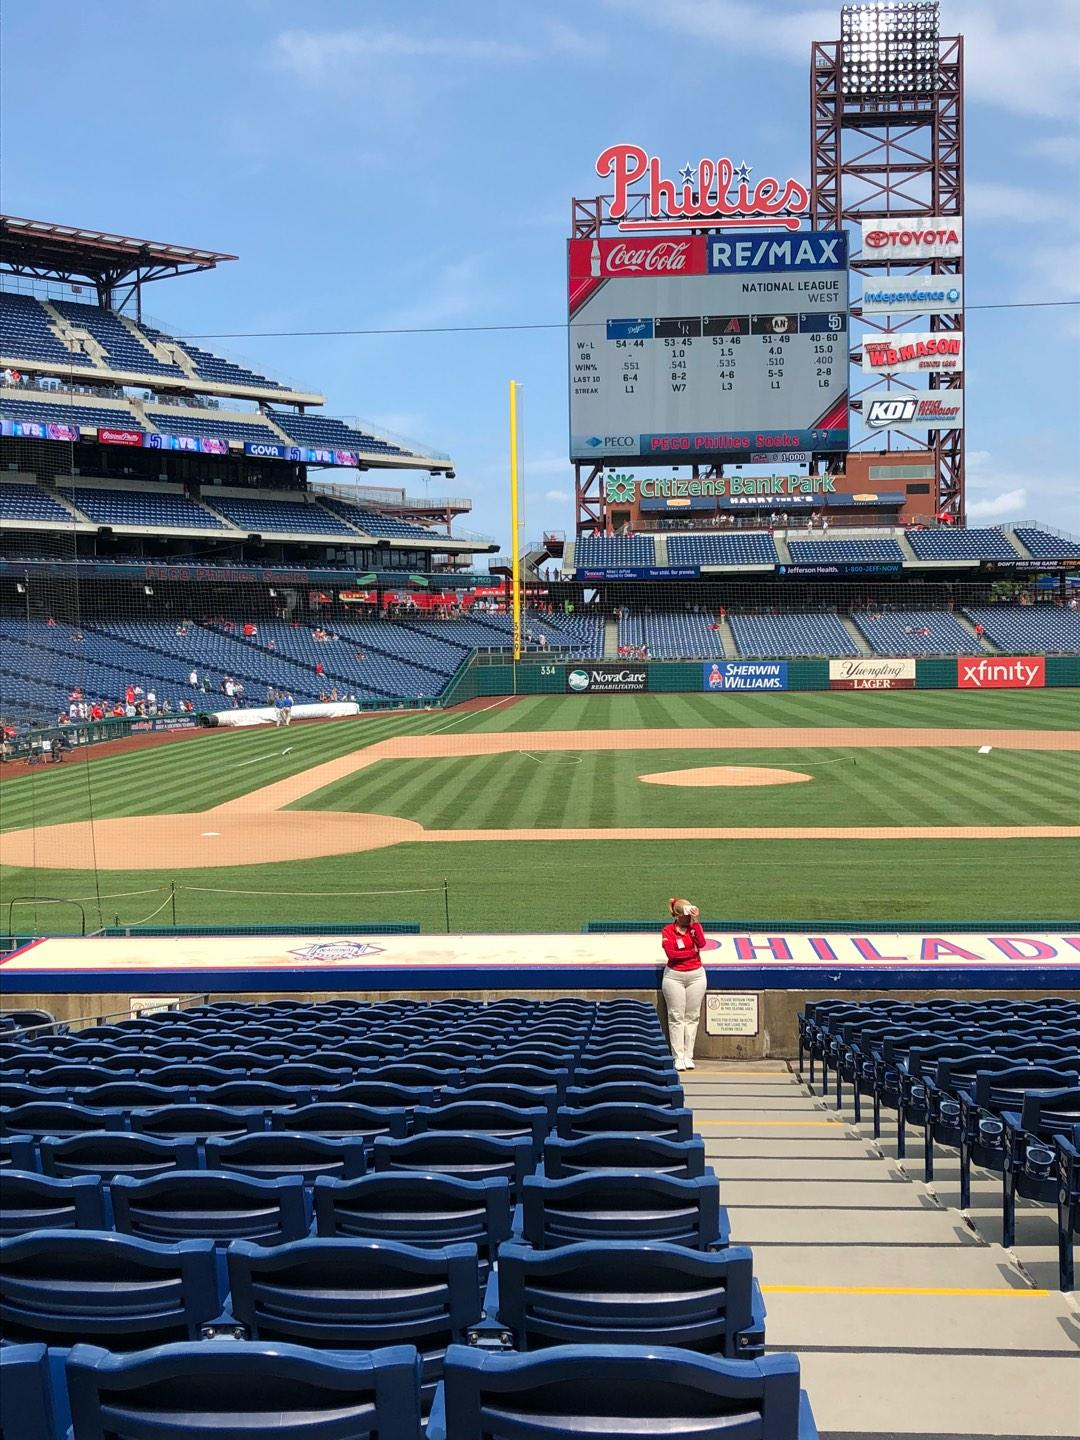 Citizens Bank Park Secção 118 Fila 18 Lugar 1